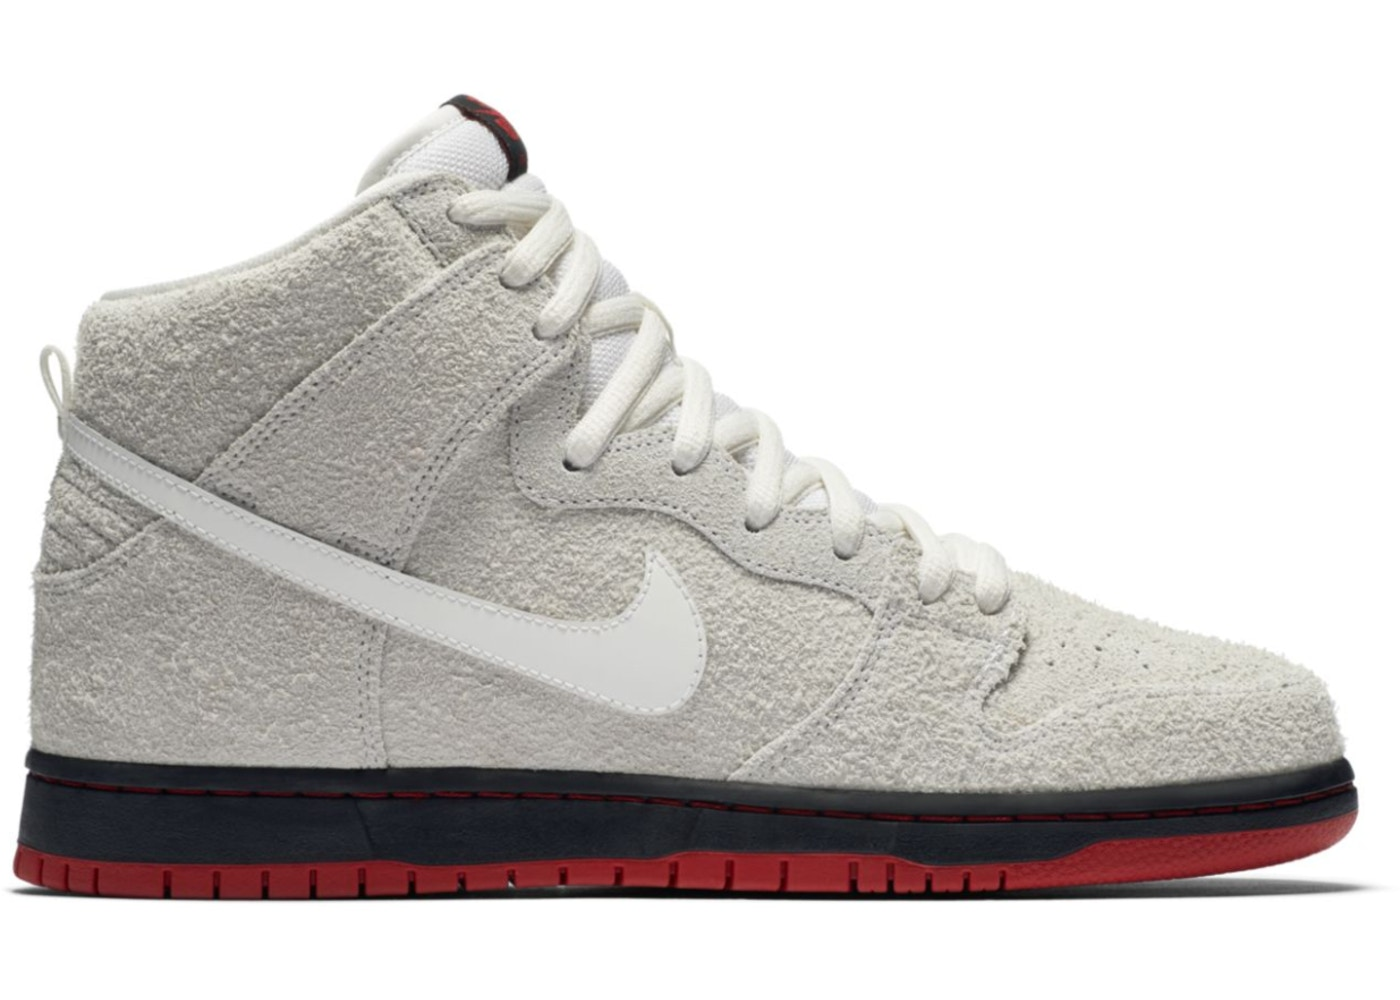 Nike Dunk SB High Wolf In Sheep's Clothing (Deluxe Set W/ Accessories)